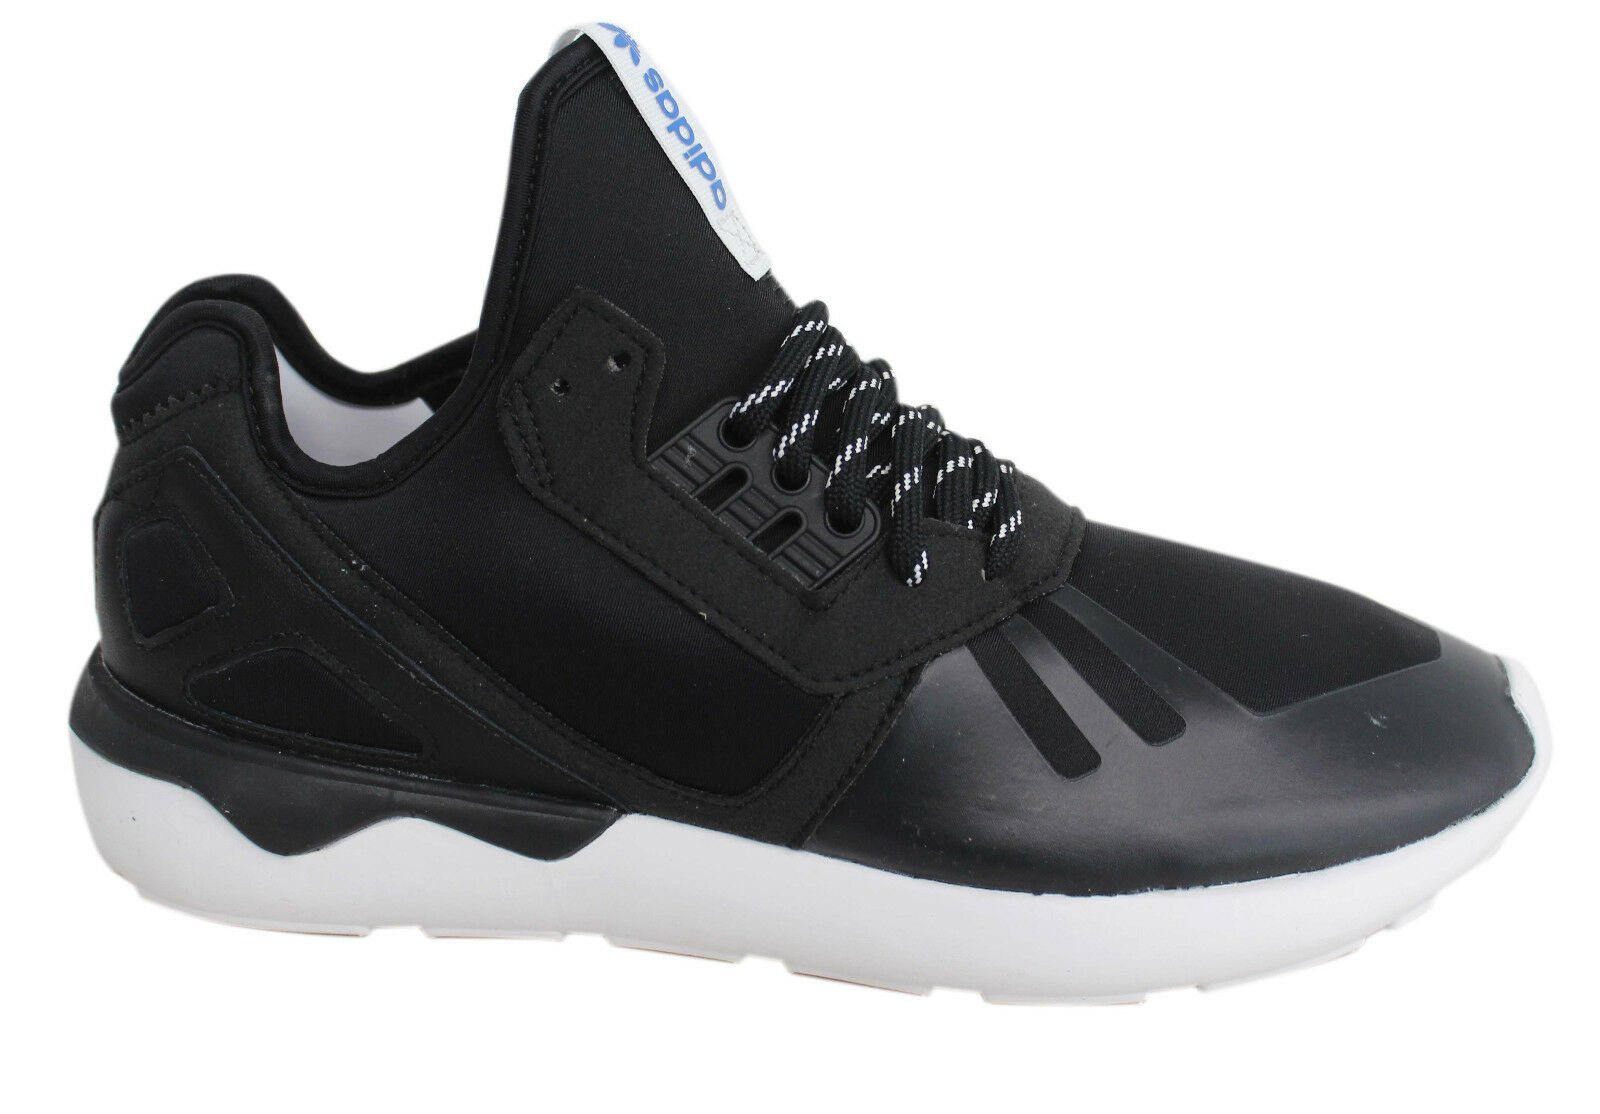 Adidas Originals Tubular Runner Lace Up Mens Black Trainers M19648 M6 Cheap and beautiful fashion